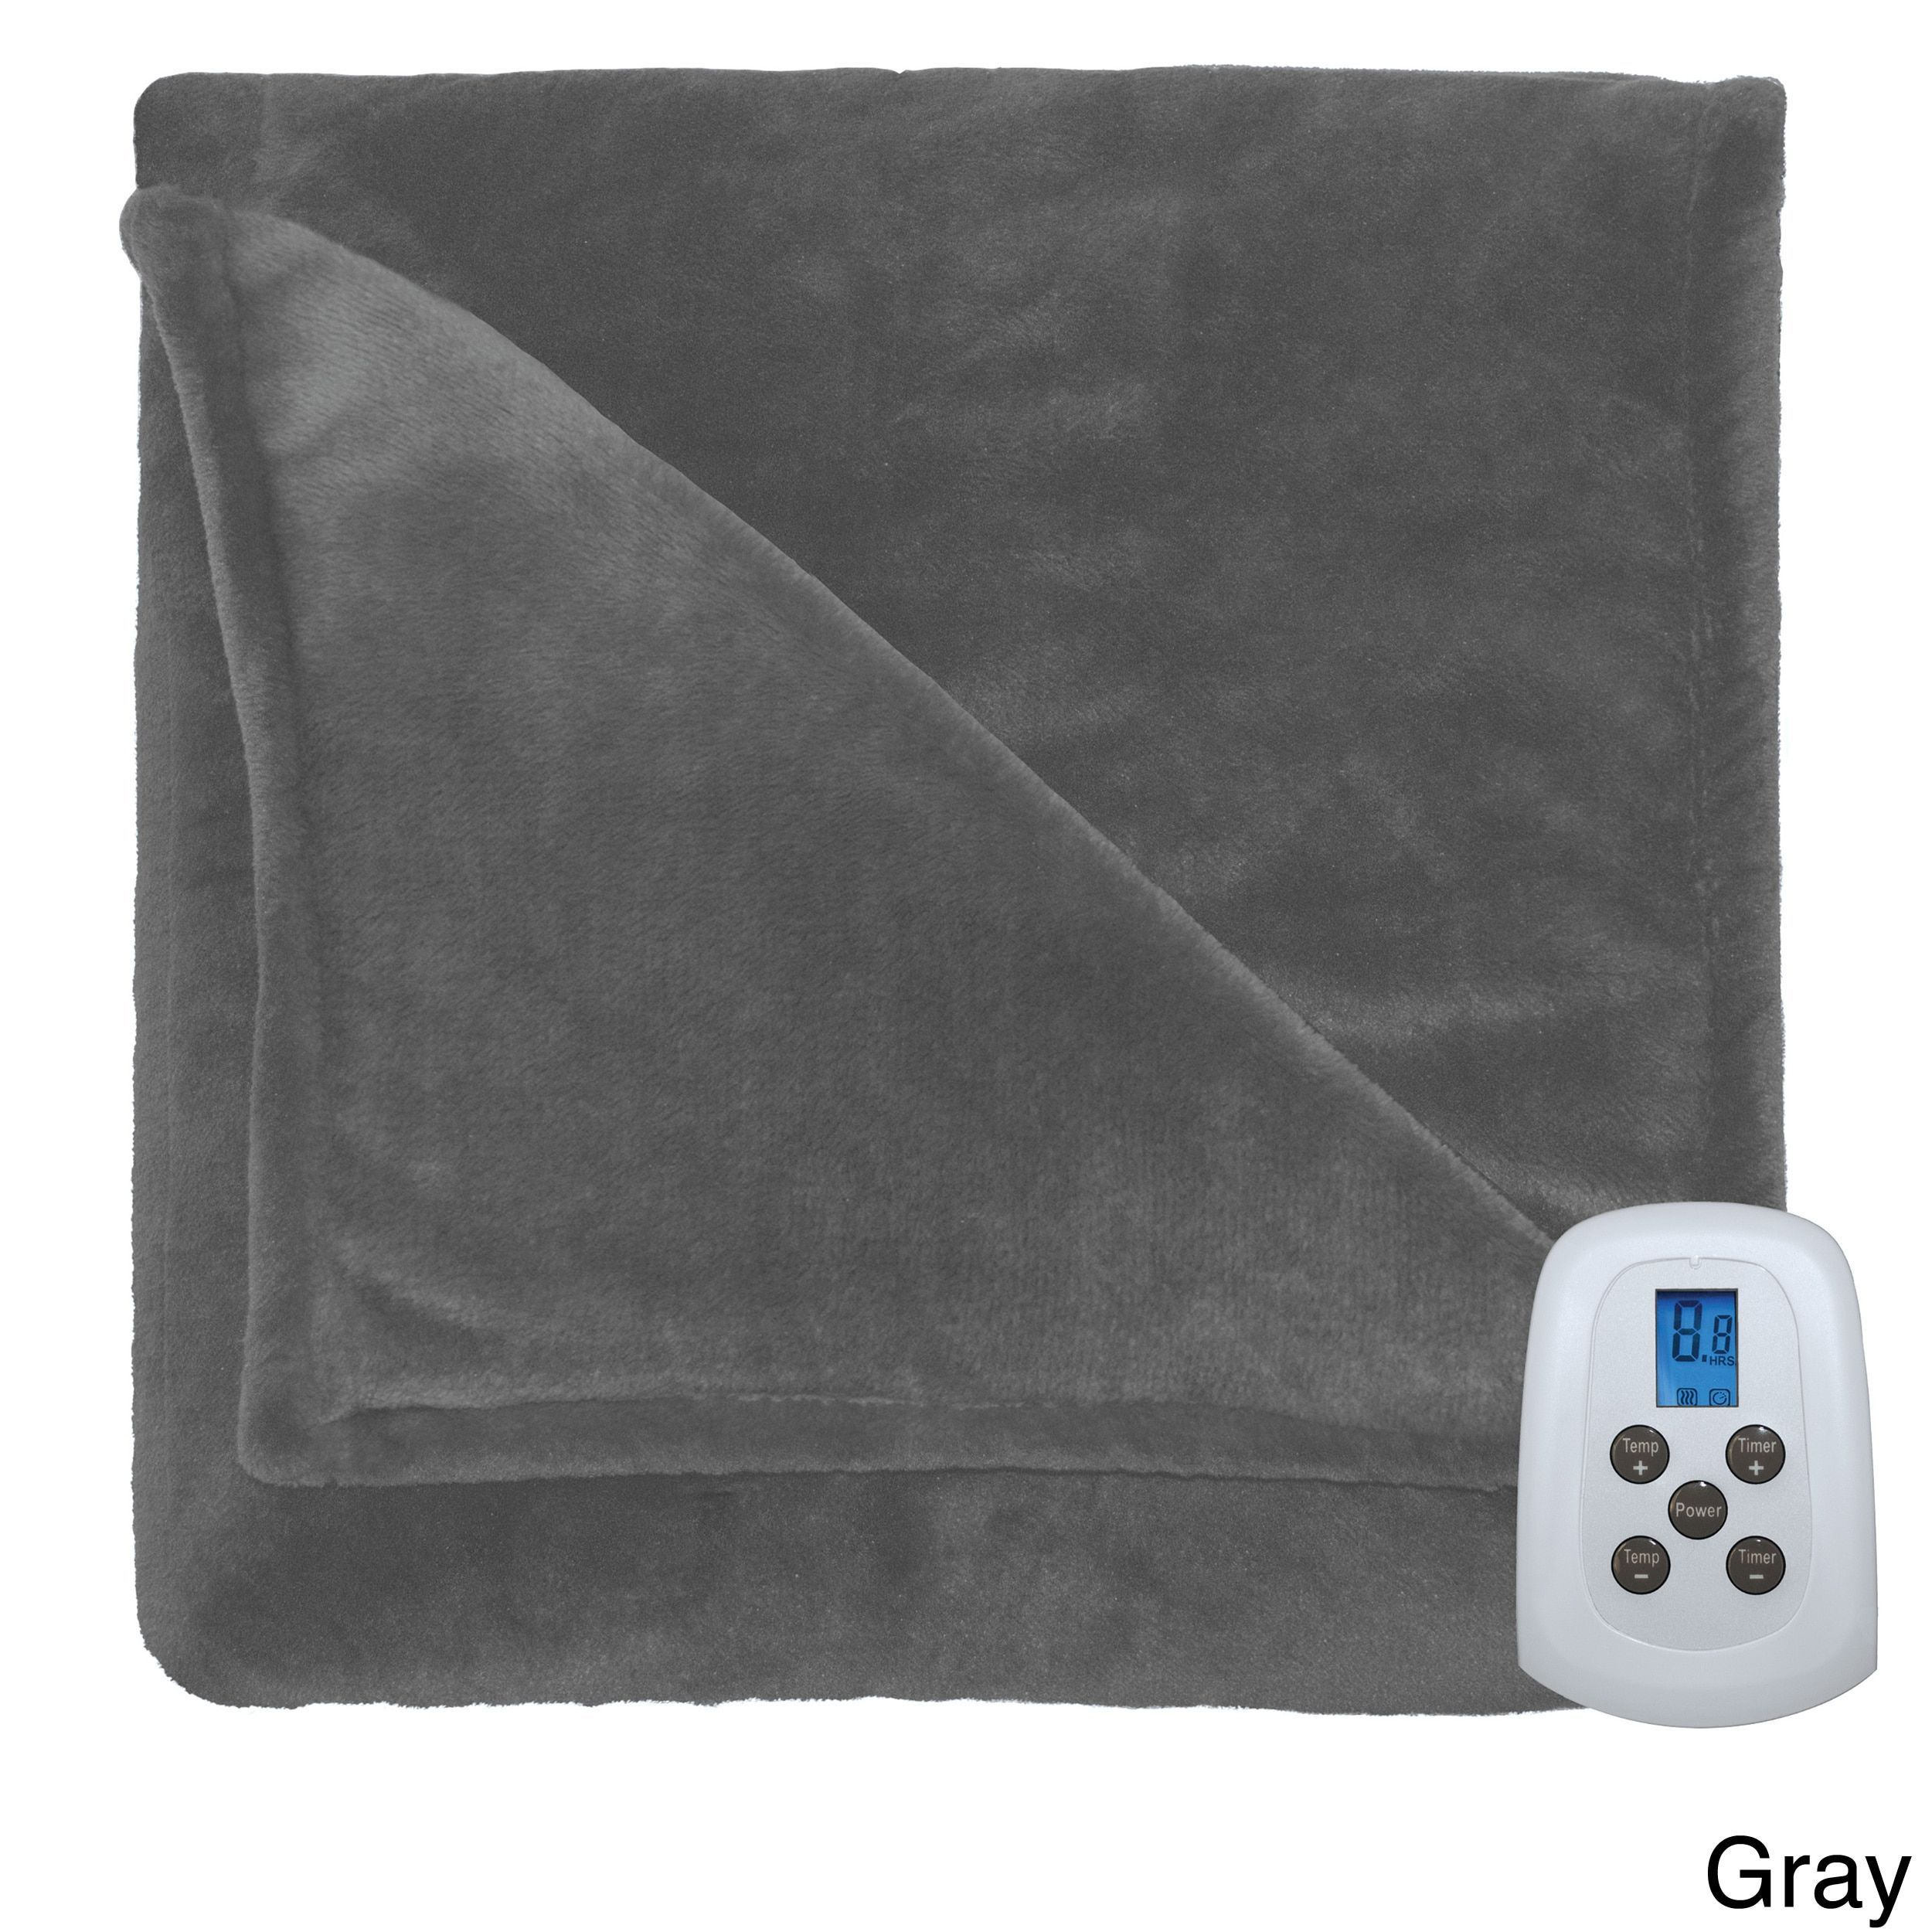 Serta Silky Plush Heated Electric Warming Blanket with a